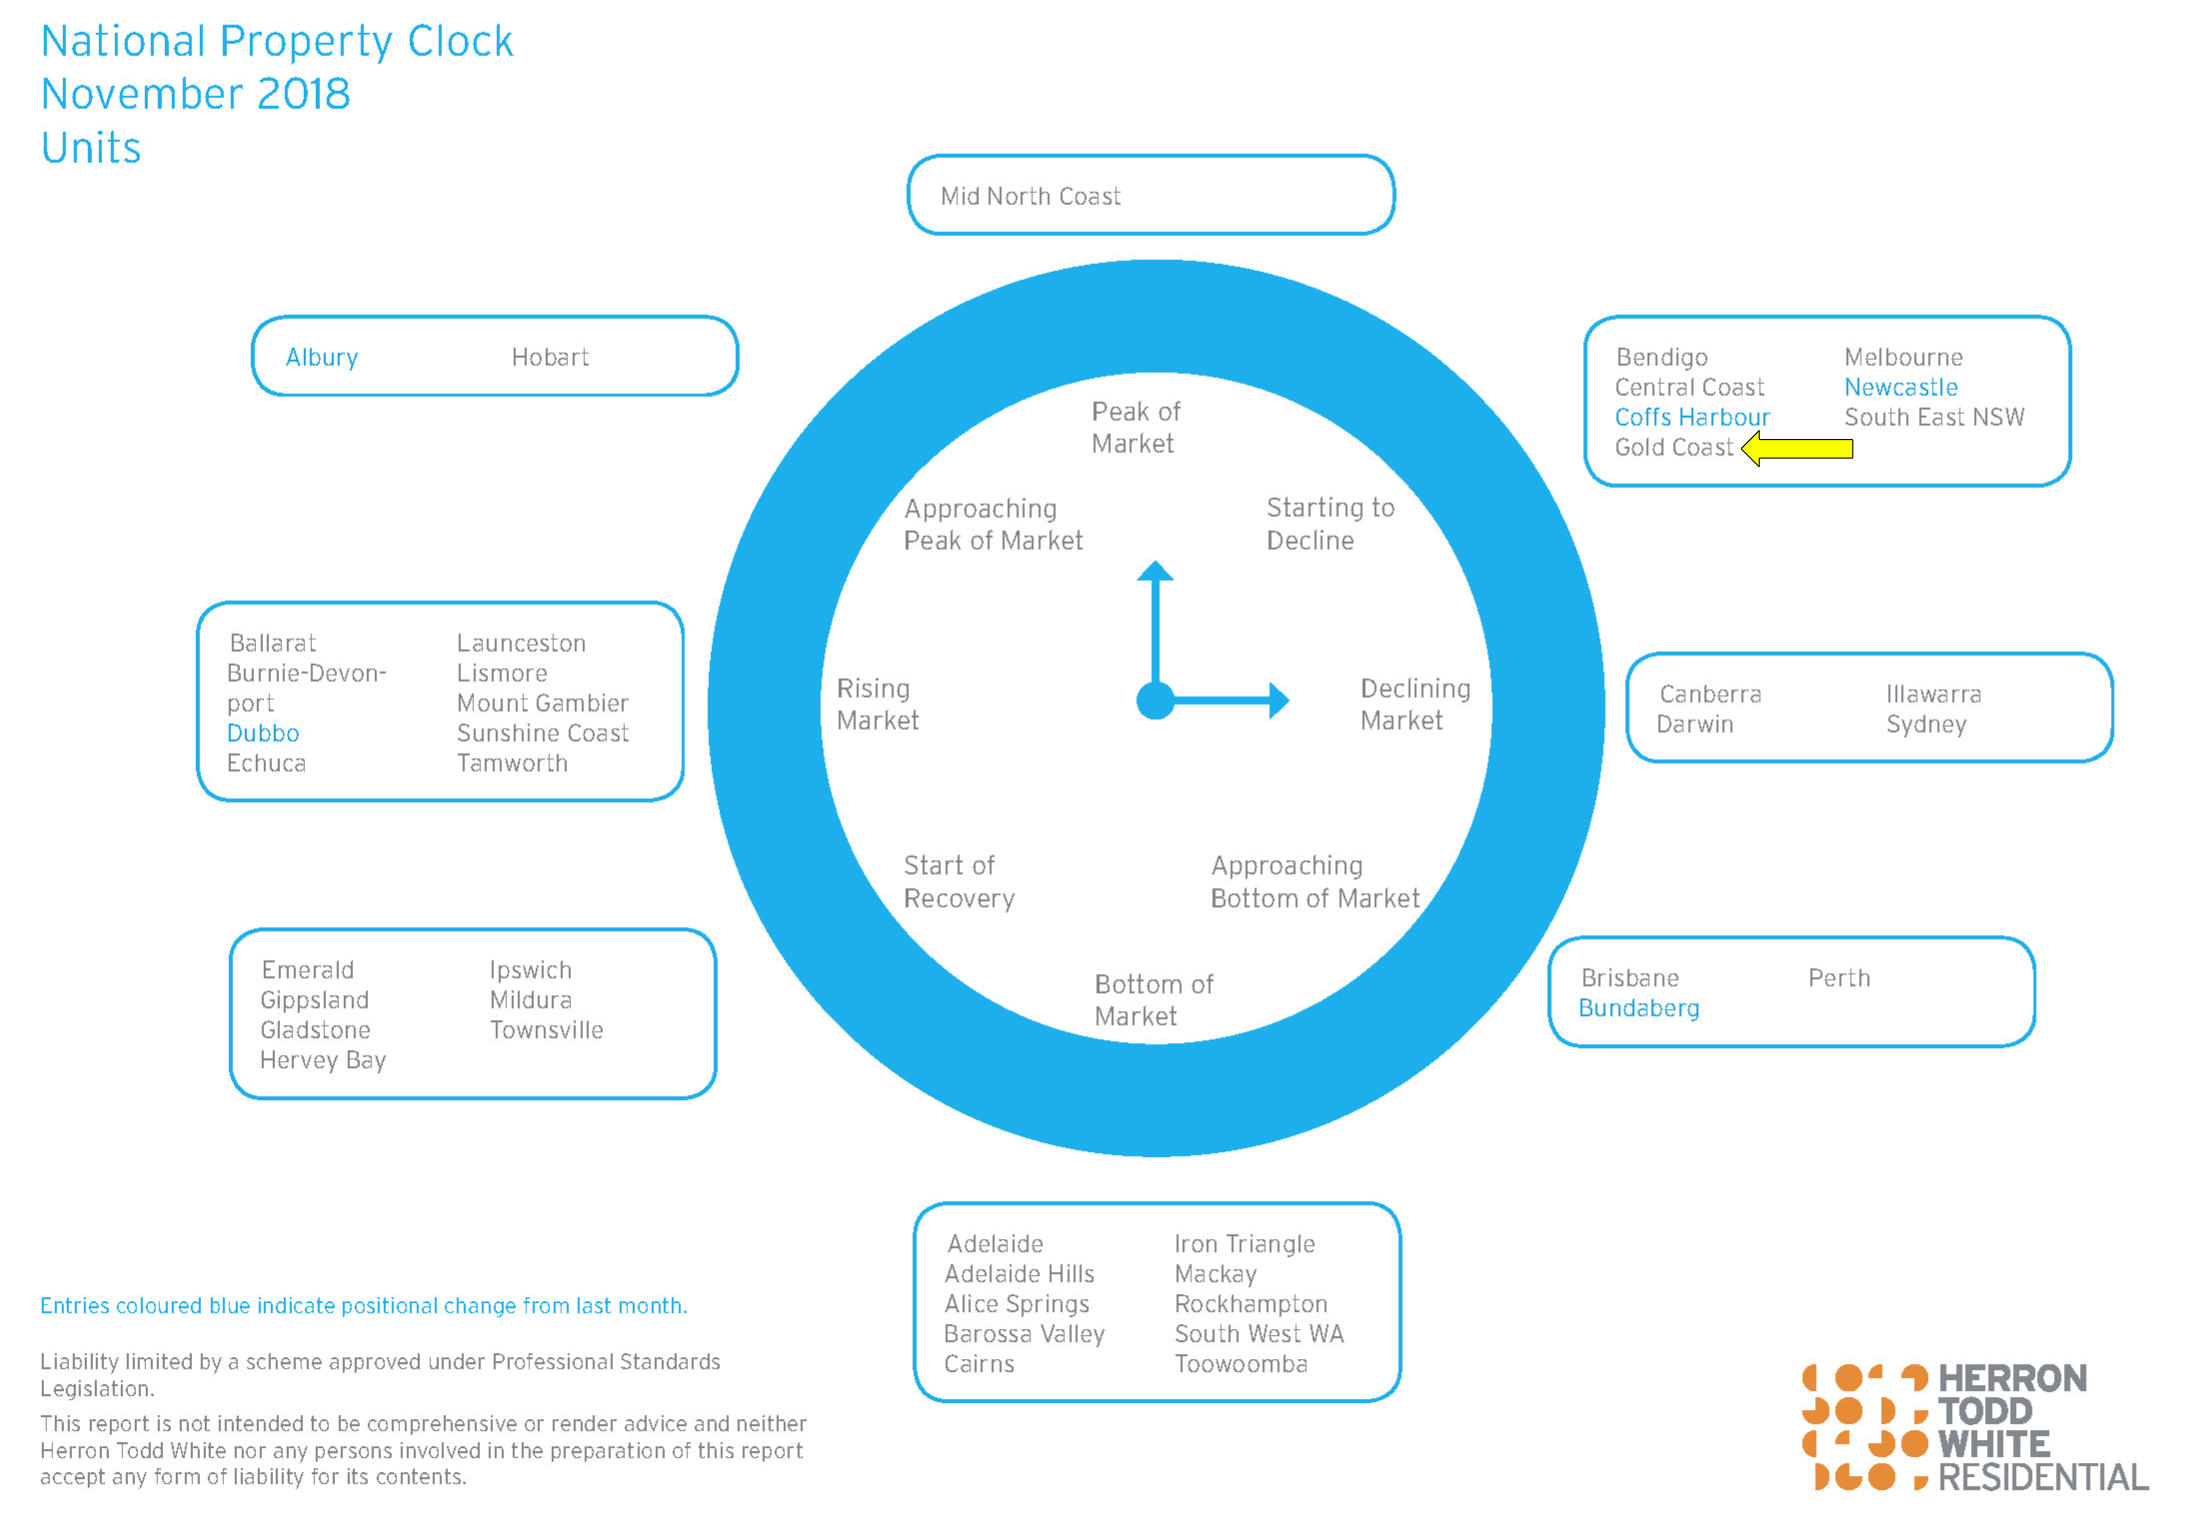 Herron Todd White property clock for units in Australia as at November 2018